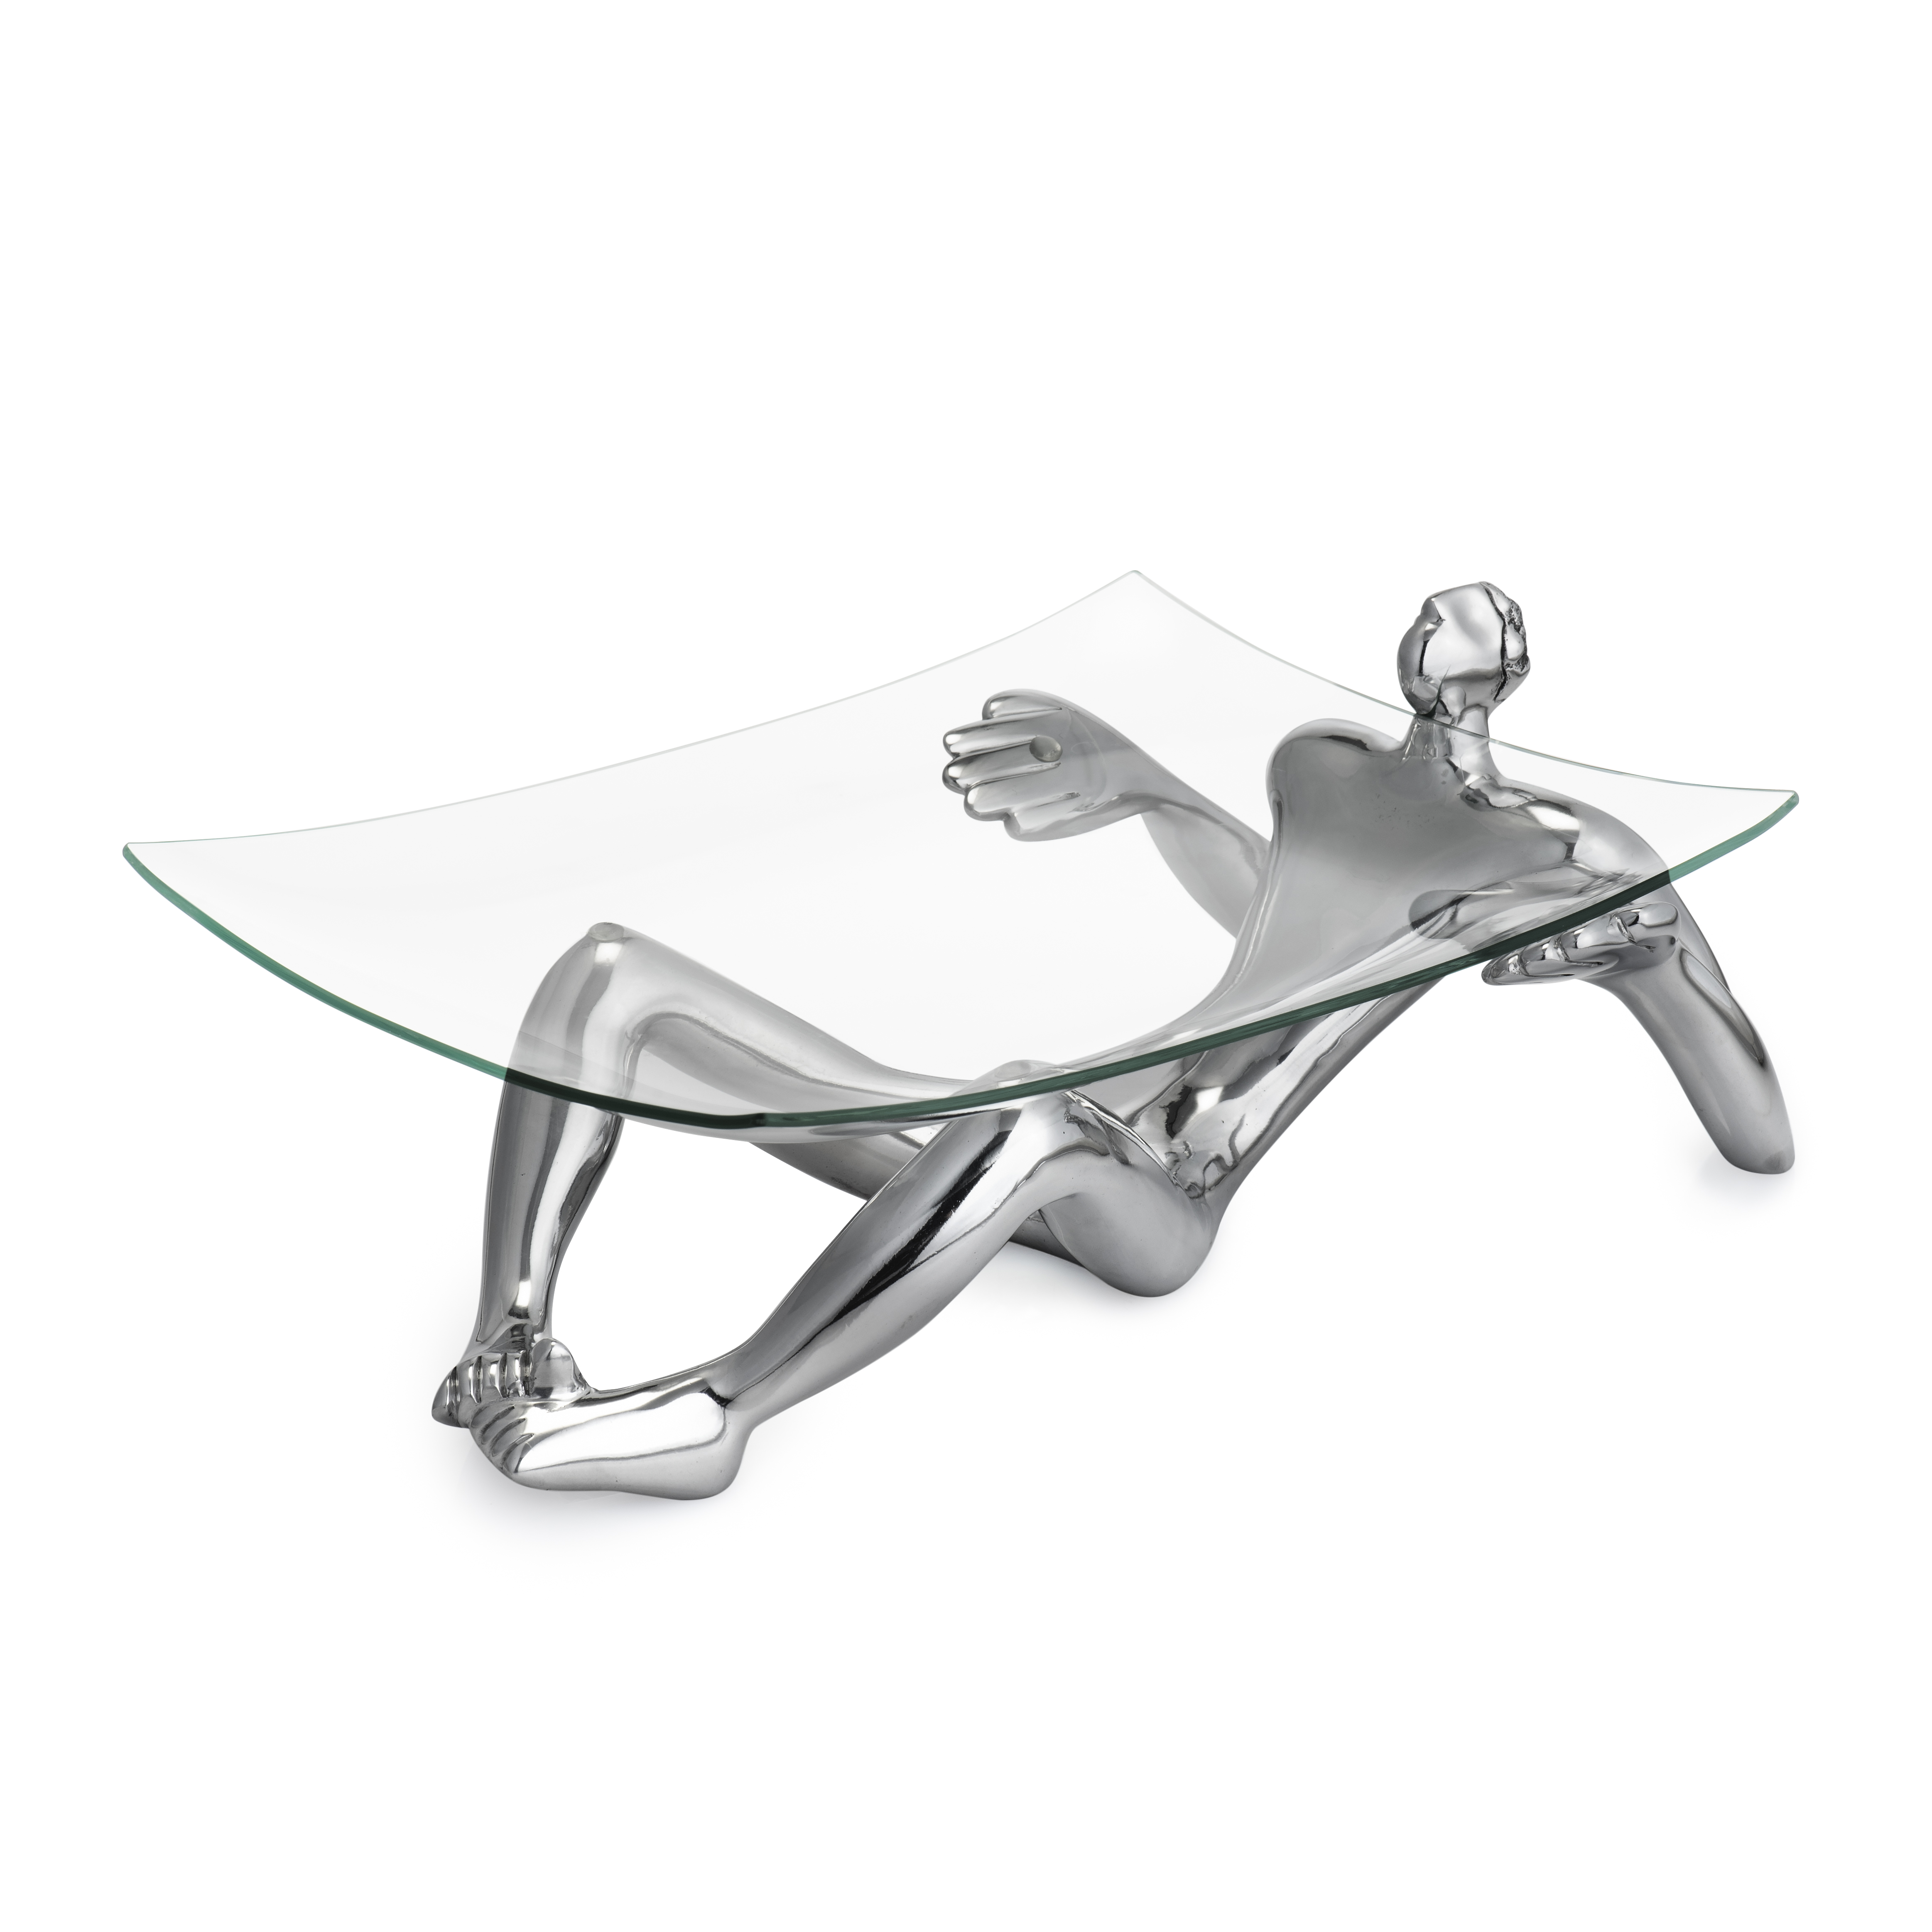 GLASS PLATTER AND STAND - on show